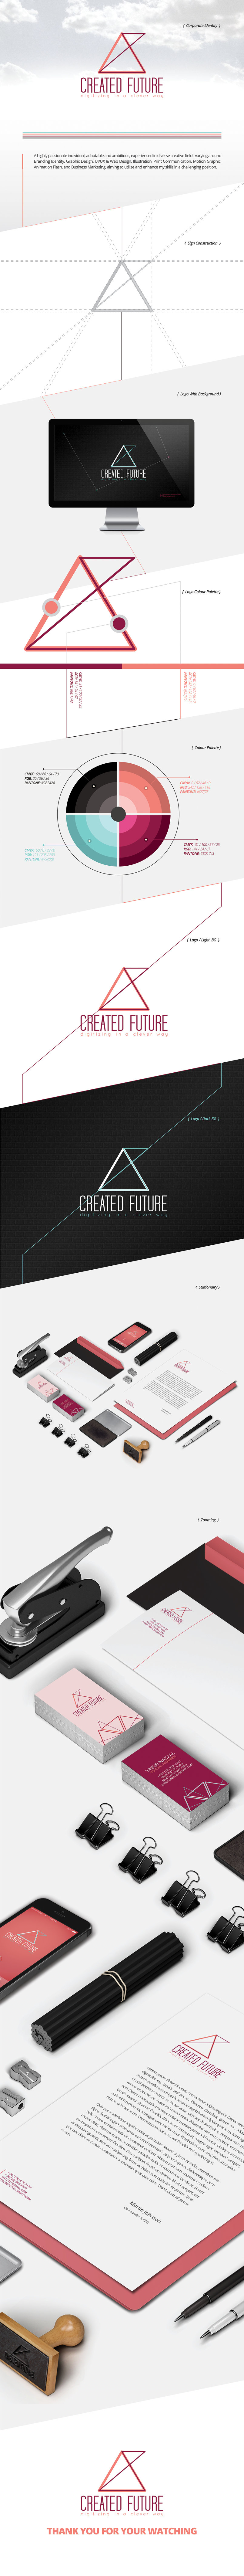 Corporate Identity For Created Future Co.